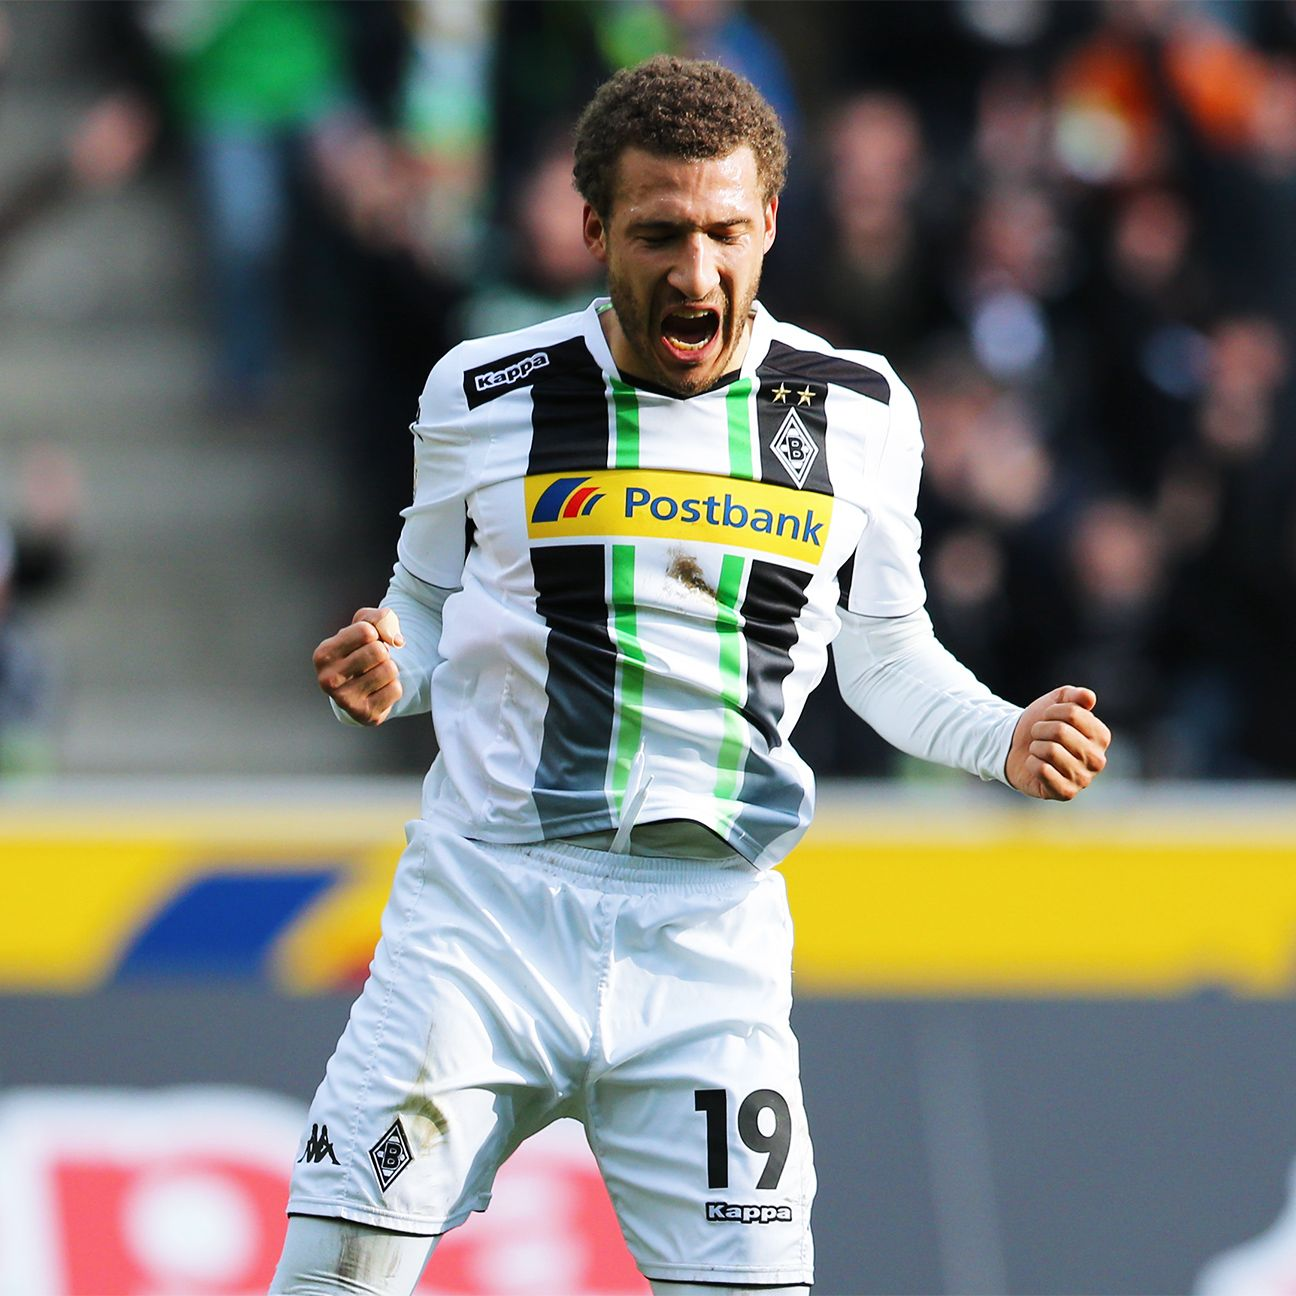 Fabian Johnson bounced back from his midweek struggles to register a goal on Sunday for Borussia Monchengladbach.